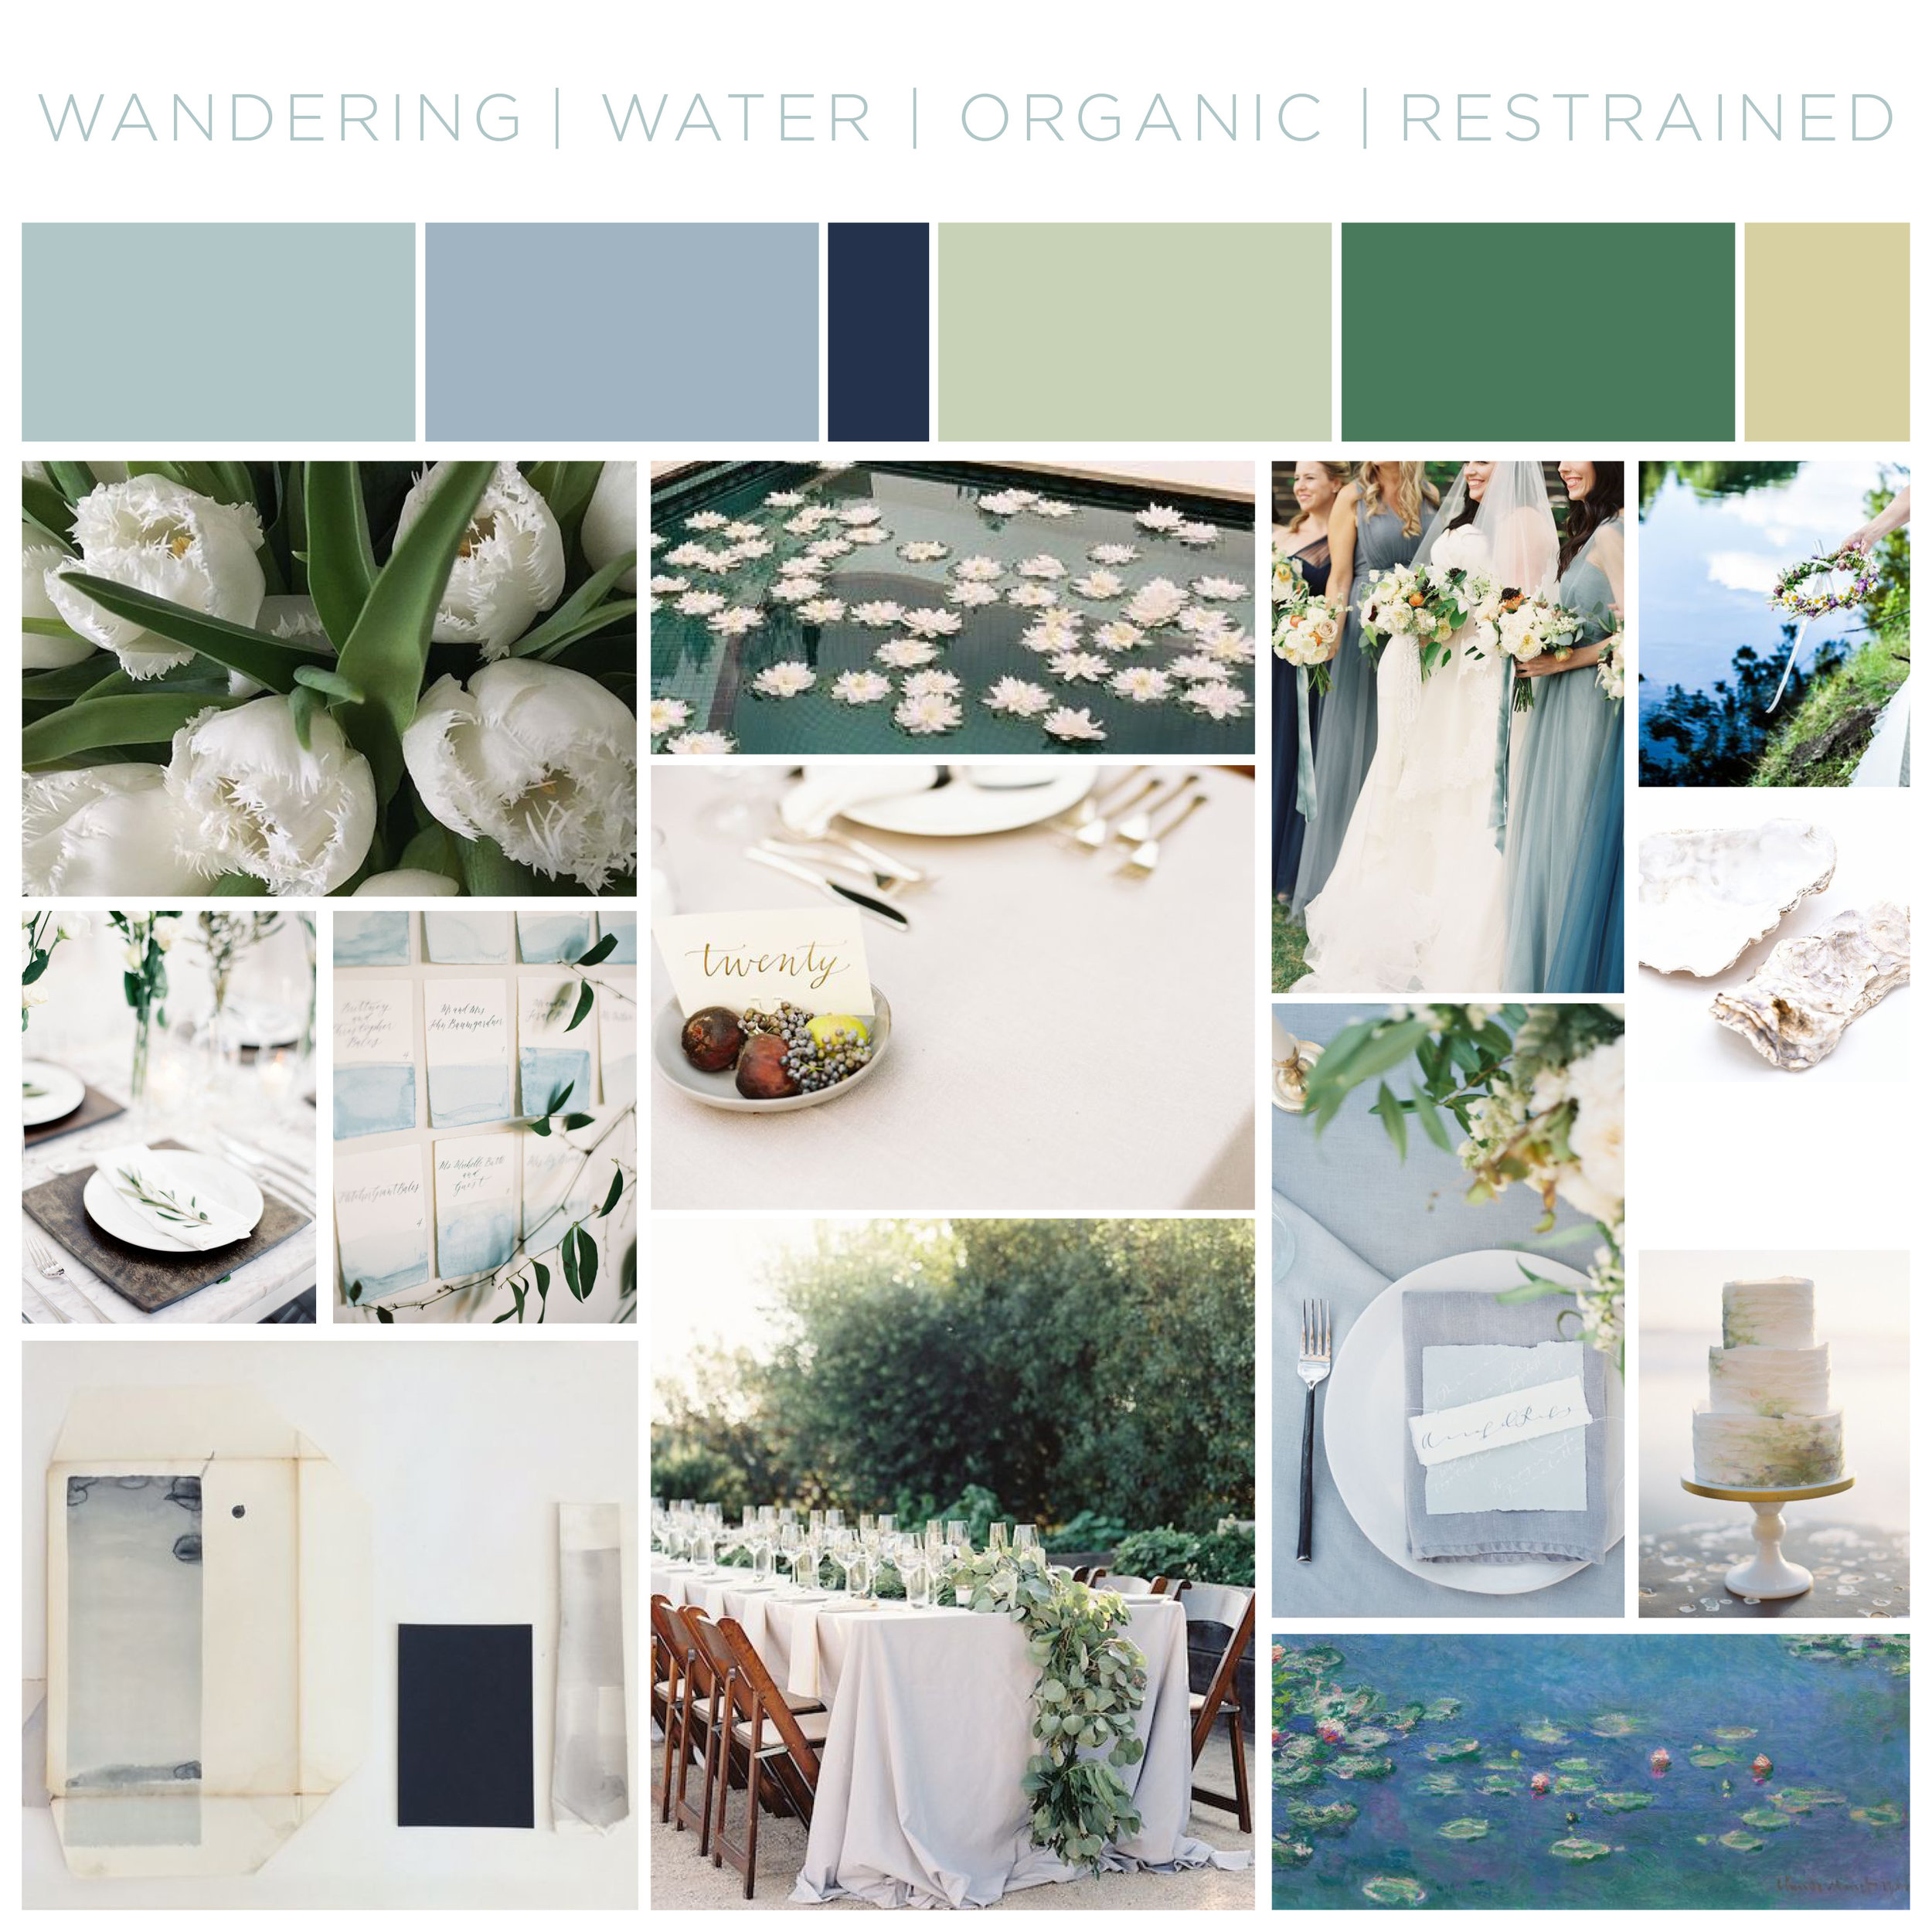 E+C- Wantering Water Organic Restrained.jpg